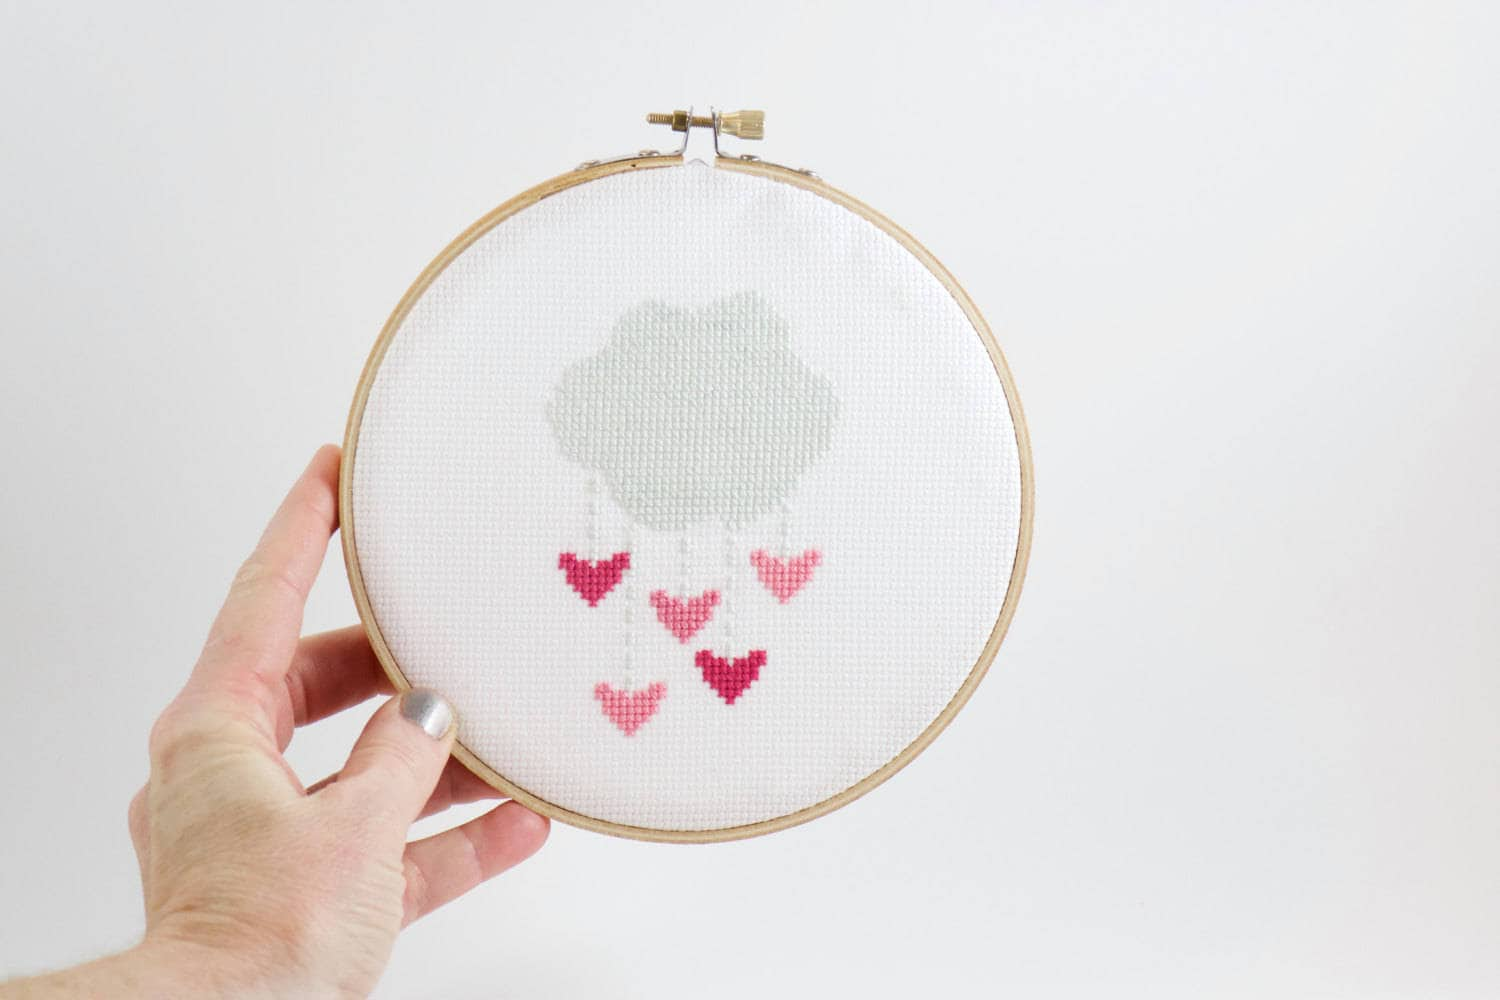 Pink hearts cross stitch kit love embroidery design art valentines sold by dandelionstitchery solutioingenieria Image collections